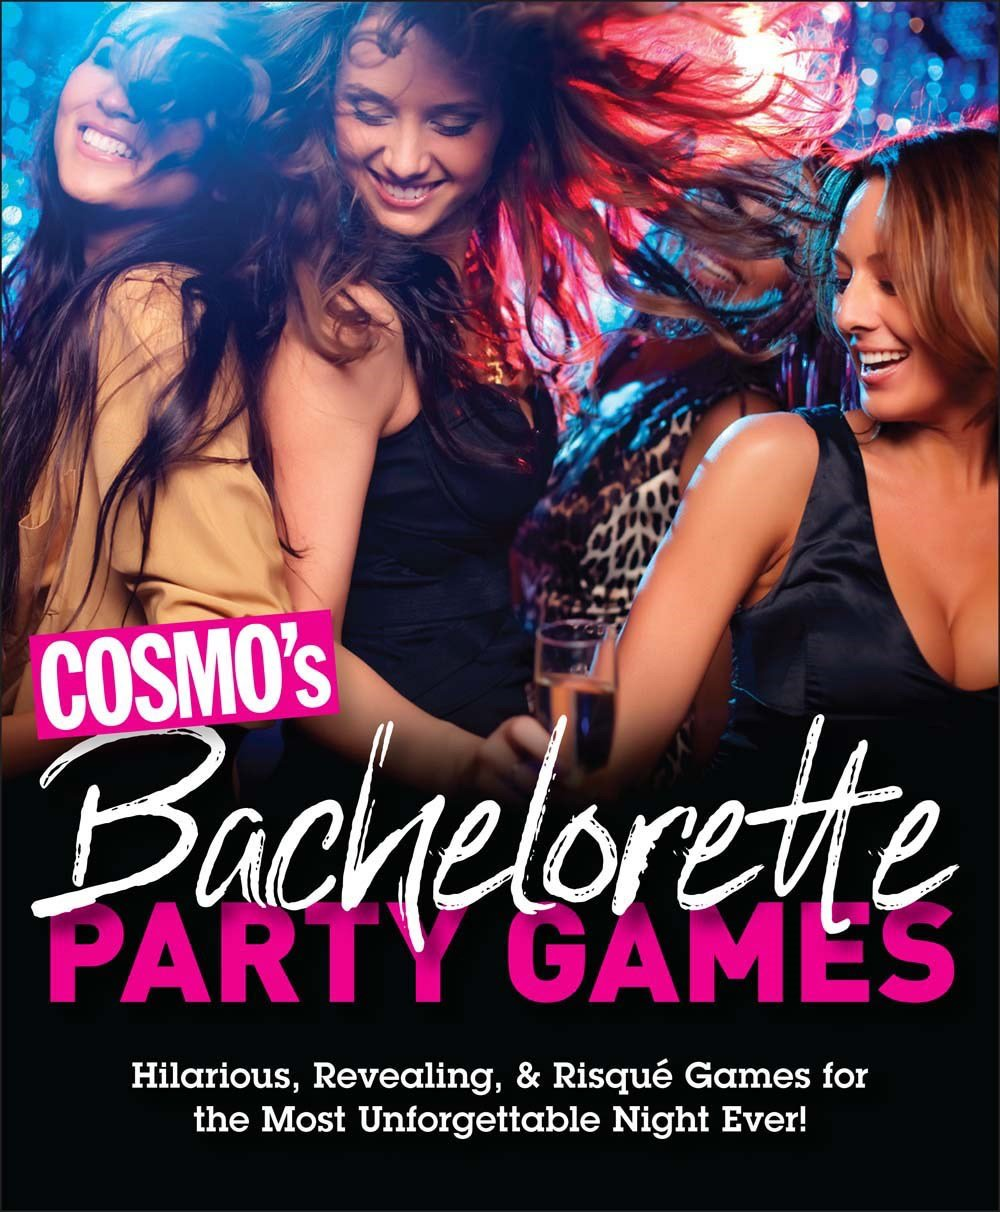 Cosmo's Bachelorette Party Games: Hilarious, Revealing & Risqué Games for the Most Unforgettable Night Ever